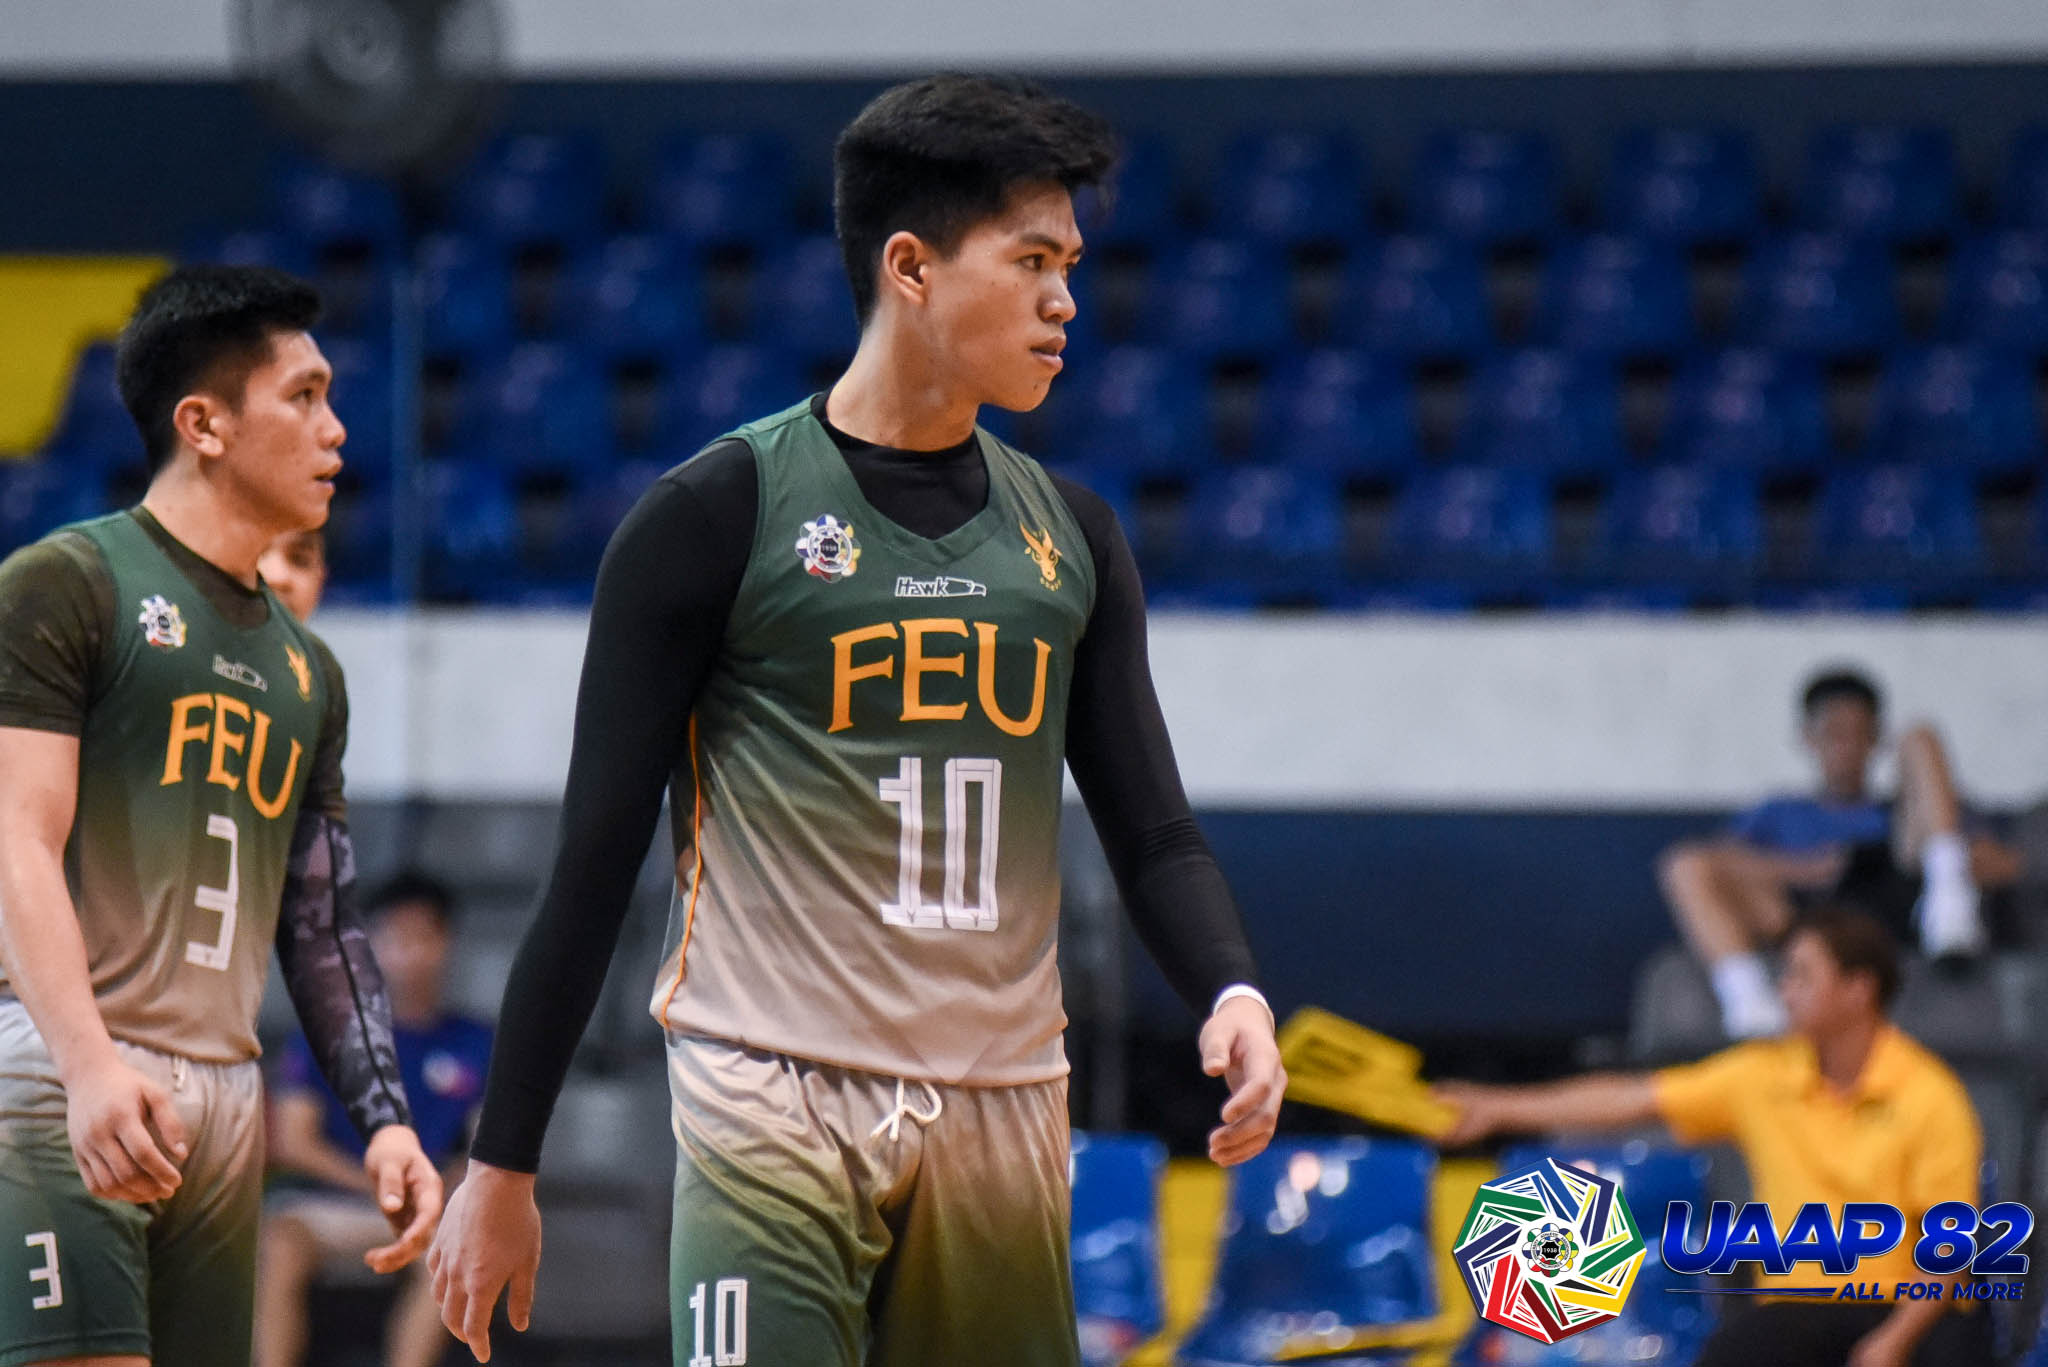 UAAP-82-Boys-Volleyball-FEU-def-UST-RANS-CAJOLO NU's Belen, FEU's Cajolo to be hailed as UAAP High School Volleyball MVPs AdU FEU News NU UAAP UE UST Volleyball  - philippine sports news